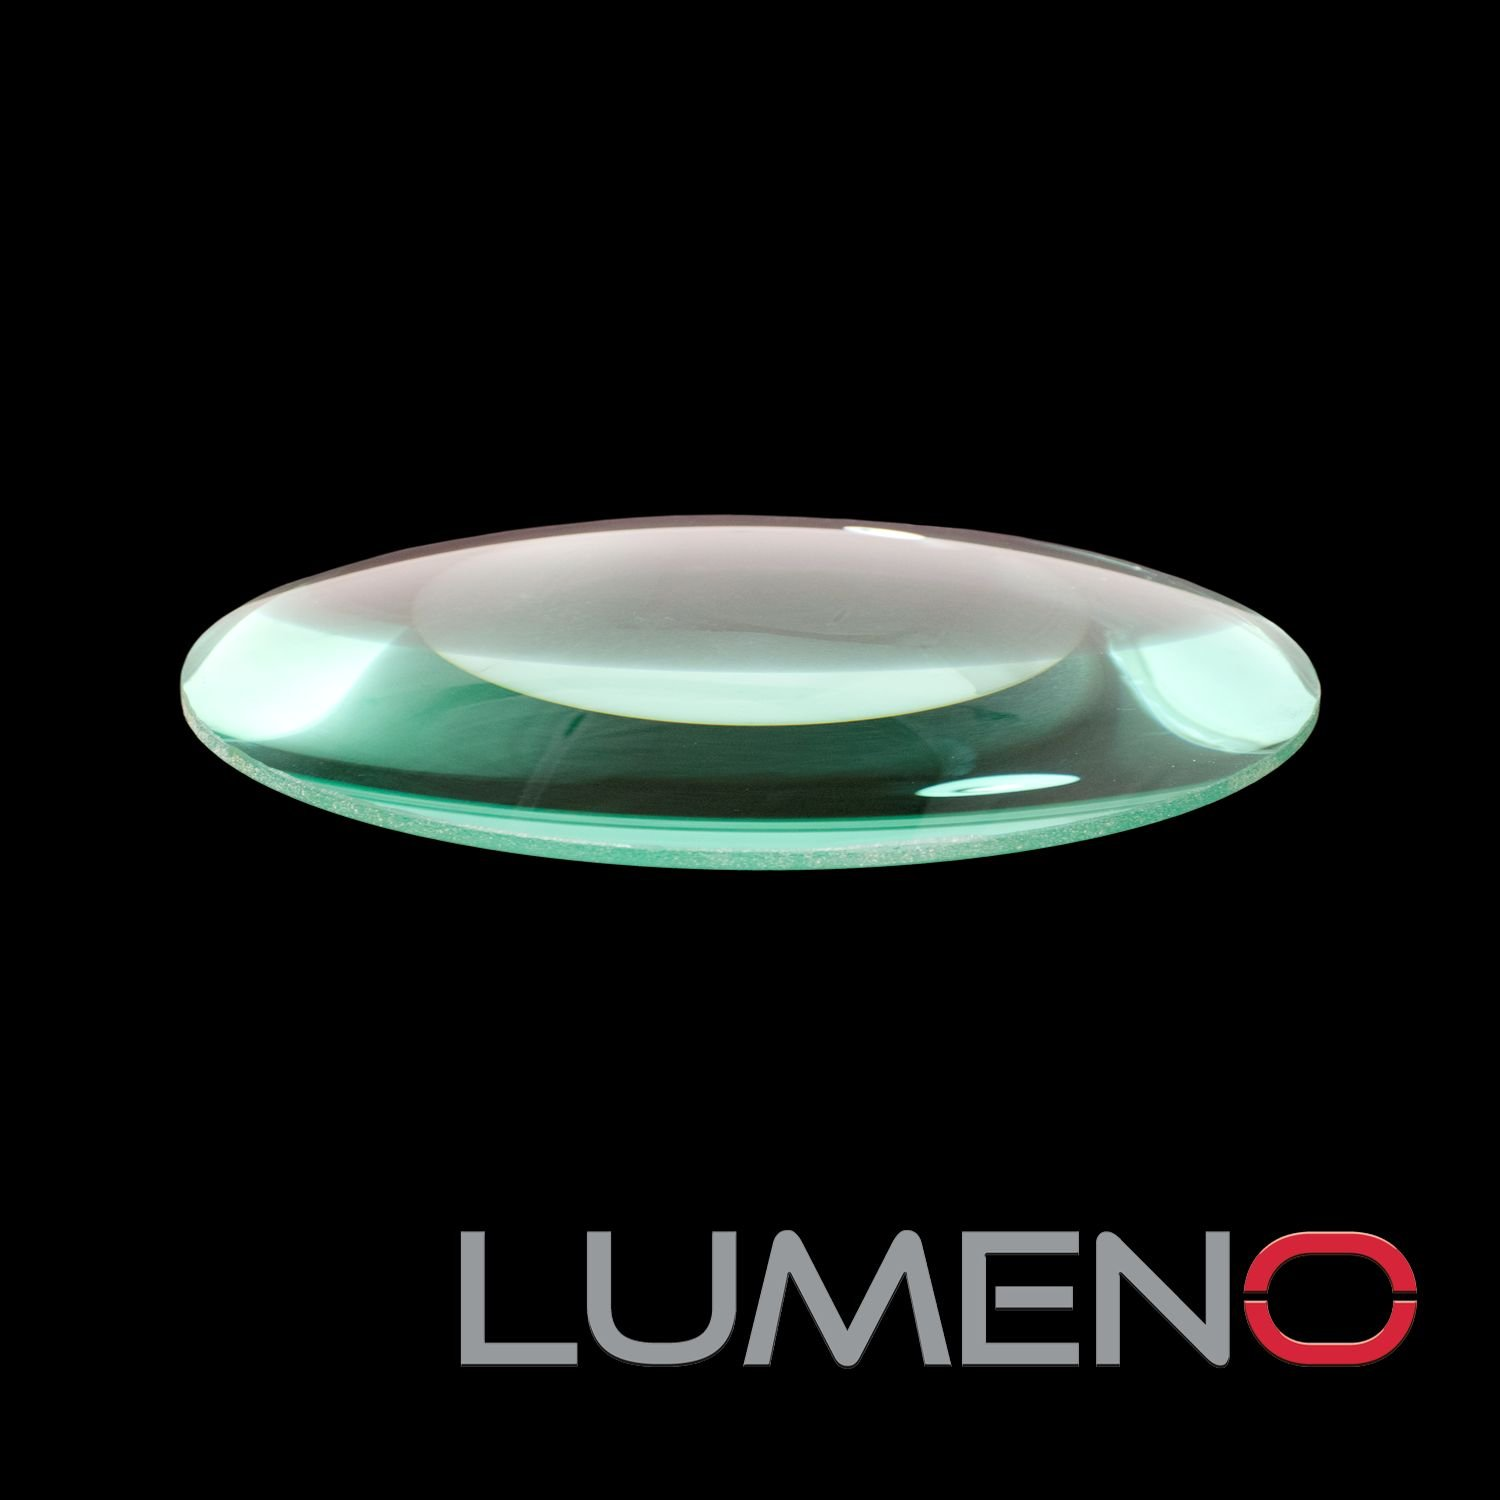 Lumeno 624X Lens for Magnifying lamp, 3 or 5 dioptres, 170mm, magnifier lamp, enlargement, different dioptres, cosmetic salons, doctor's surgery 5 dioptre